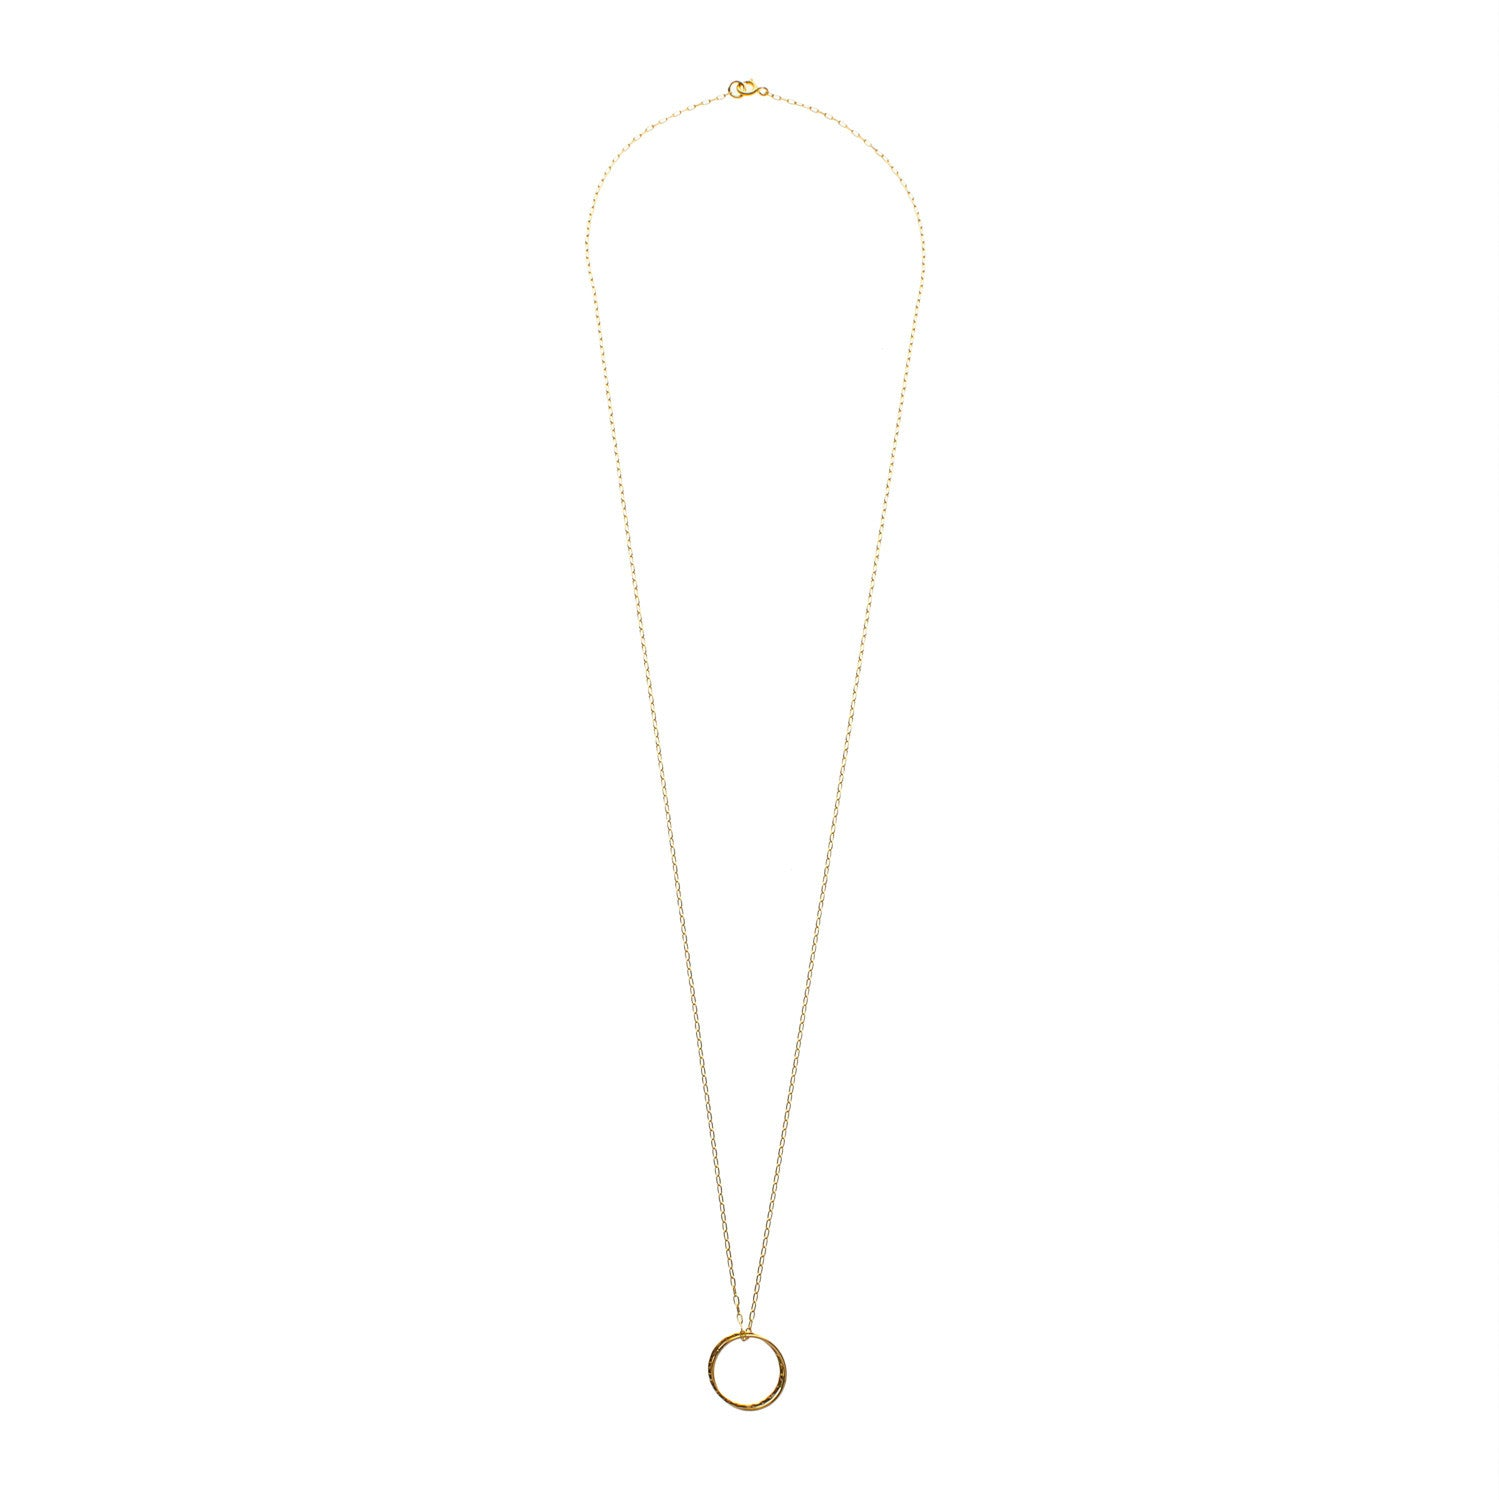 14kt Long Gold Filled Chain with Fused Circle - MoMuse Jewellery